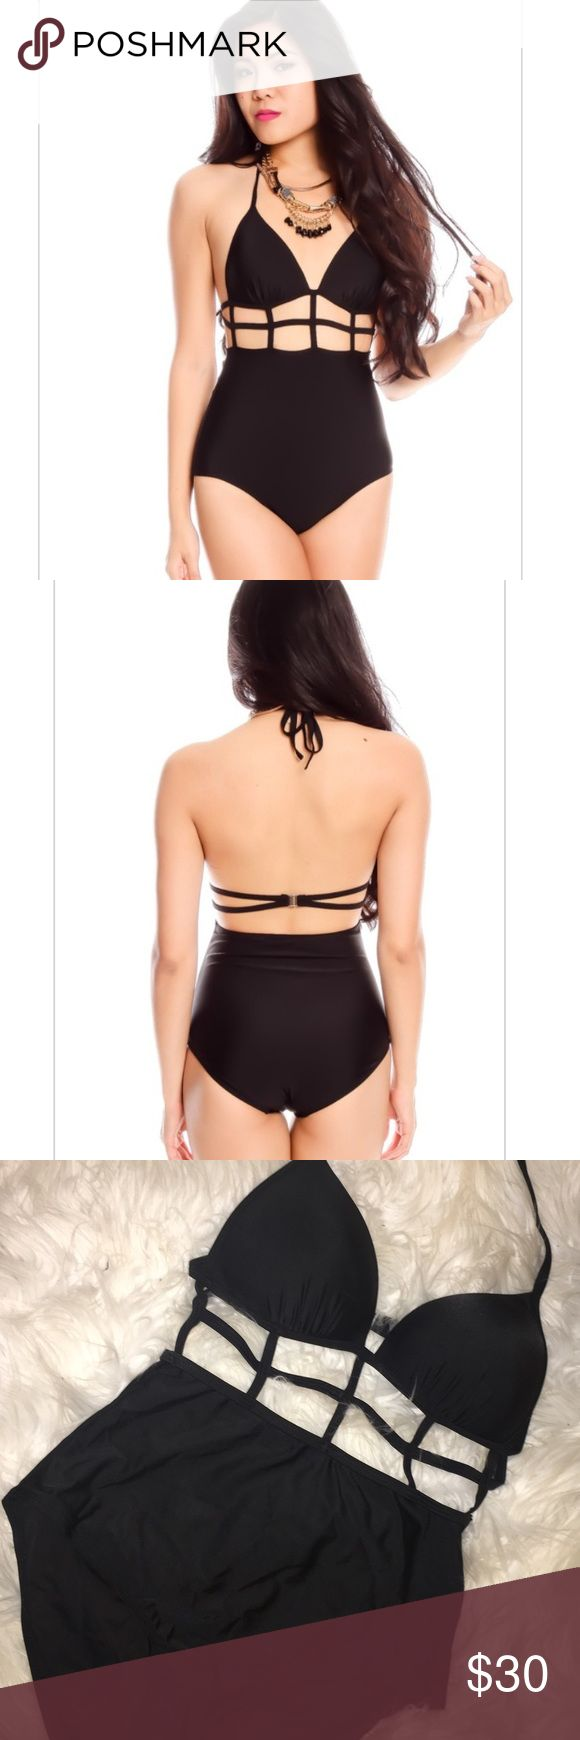 """New Women's Black One Piece Cut Out Swimsuit Gorgeous Women's Medium Black One Piece Swimsuit Bikini Swimwear. Top has slightly Padded cups, ties at the neck and clip in the back. Cuts outs in the front to give a sexy look. Bottom is full coverage with hygienic liner attached.   Modeled: Size M Material: Polyester/Spandex Measurements Estimate: Length 24"""", hips 38"""", Chest B/C/D, stretchable  NO BRAND  ✔️Ships 2-4 business days :) ✖️Questions to answers that are already stated in the…"""